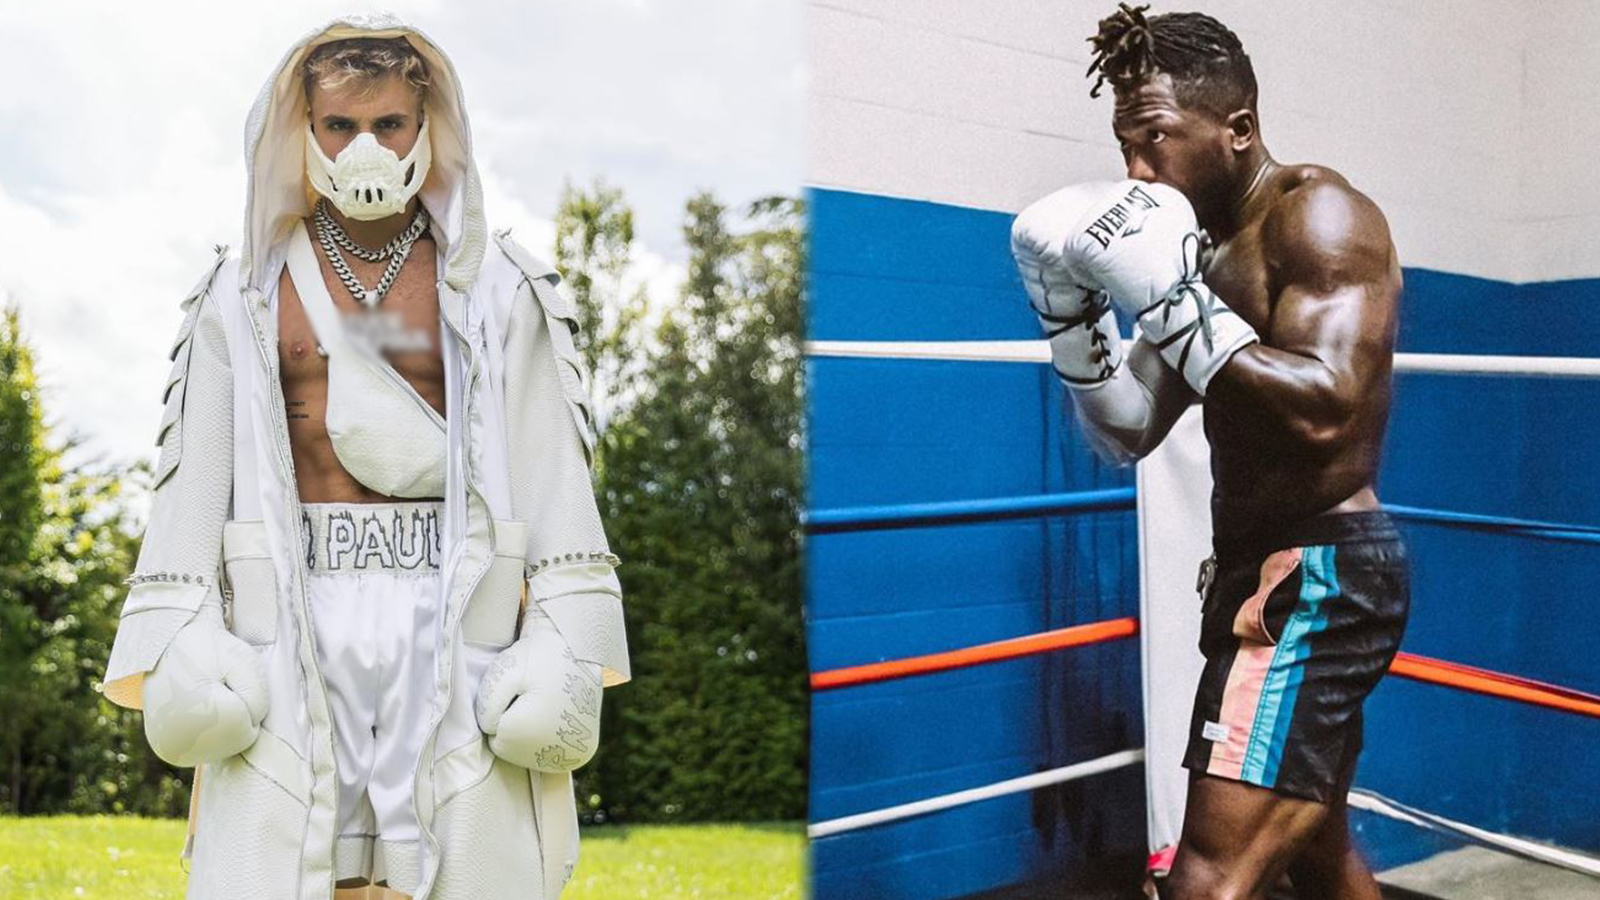 Jake Paul and Nate Robinson pose in boxing gear